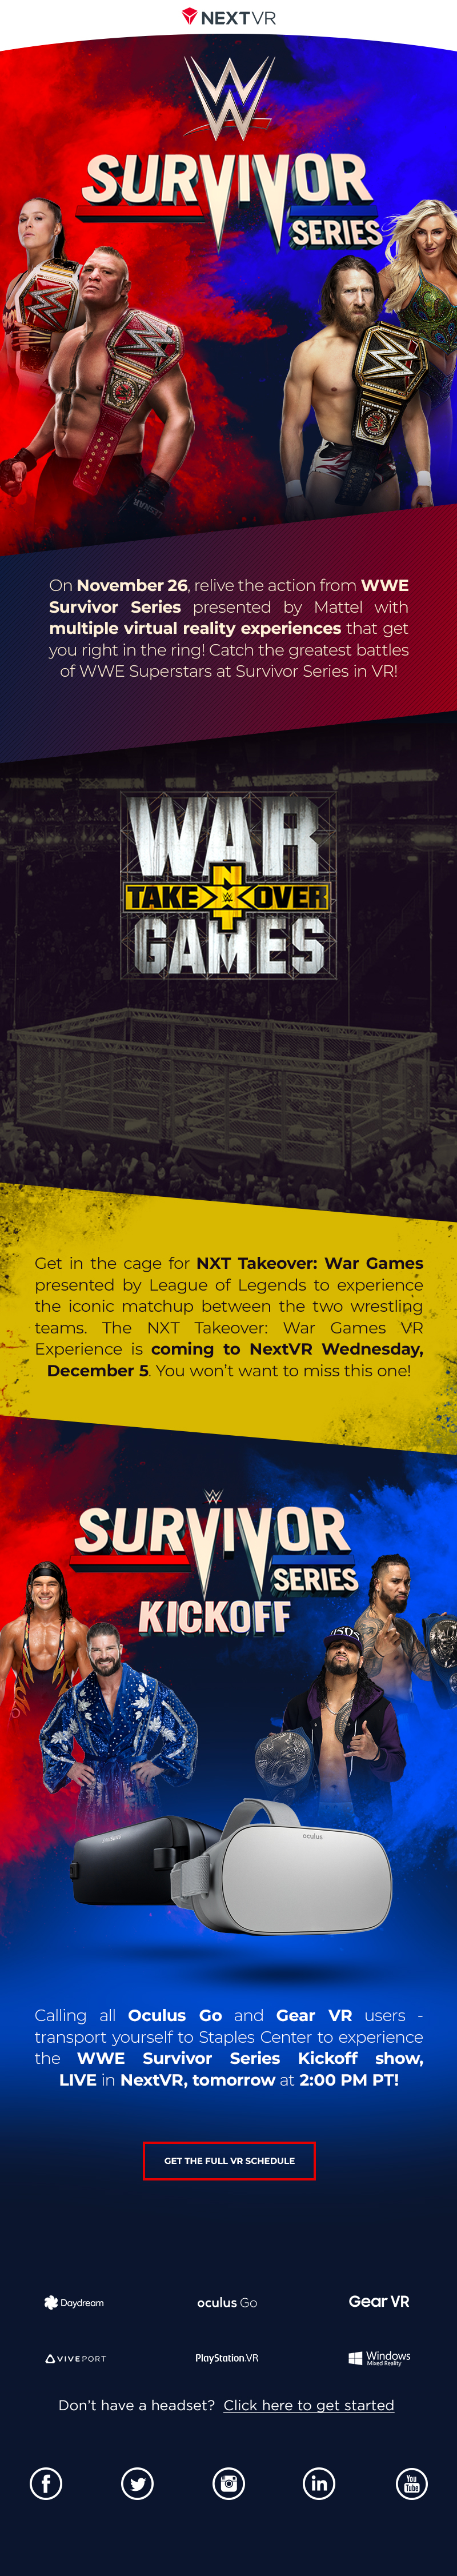 Email design for WWE Survival Series in Virtual Reality